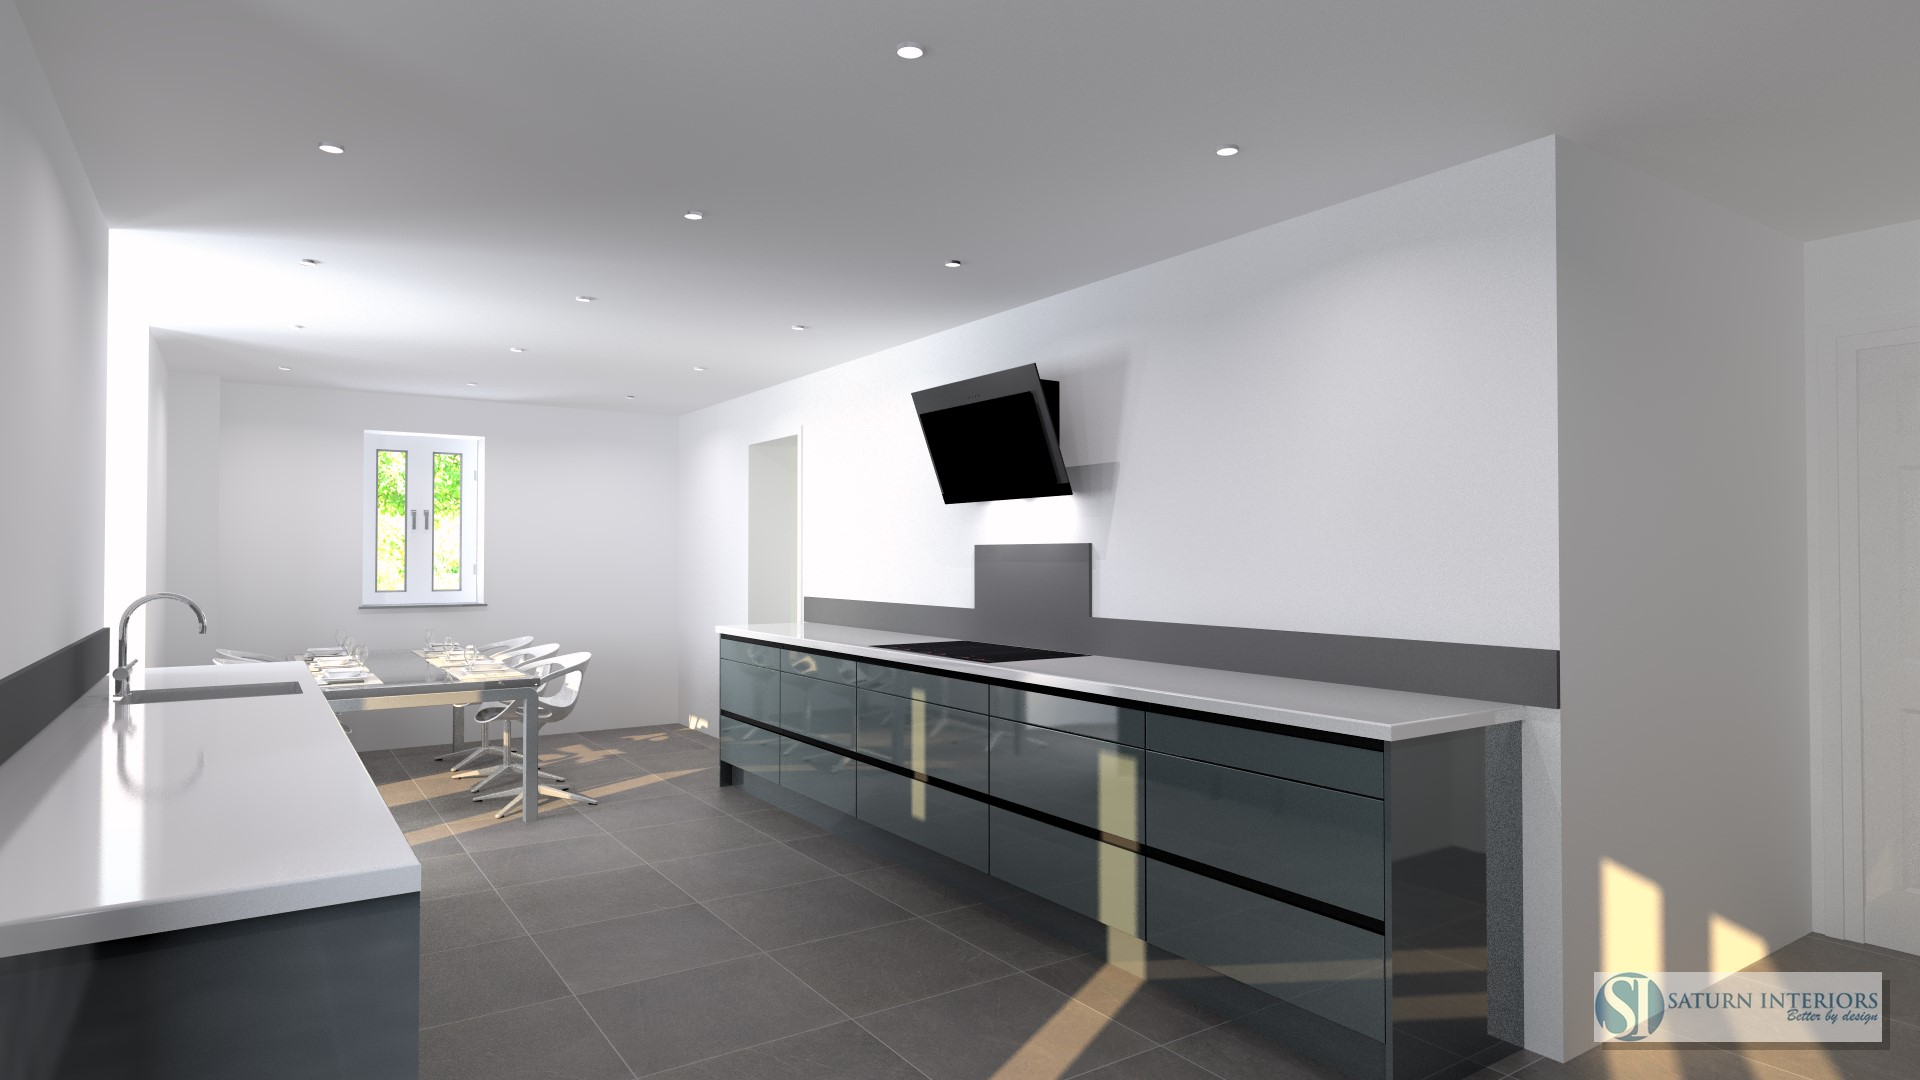 image of grey kitchen units with white worktops and grey tile floor